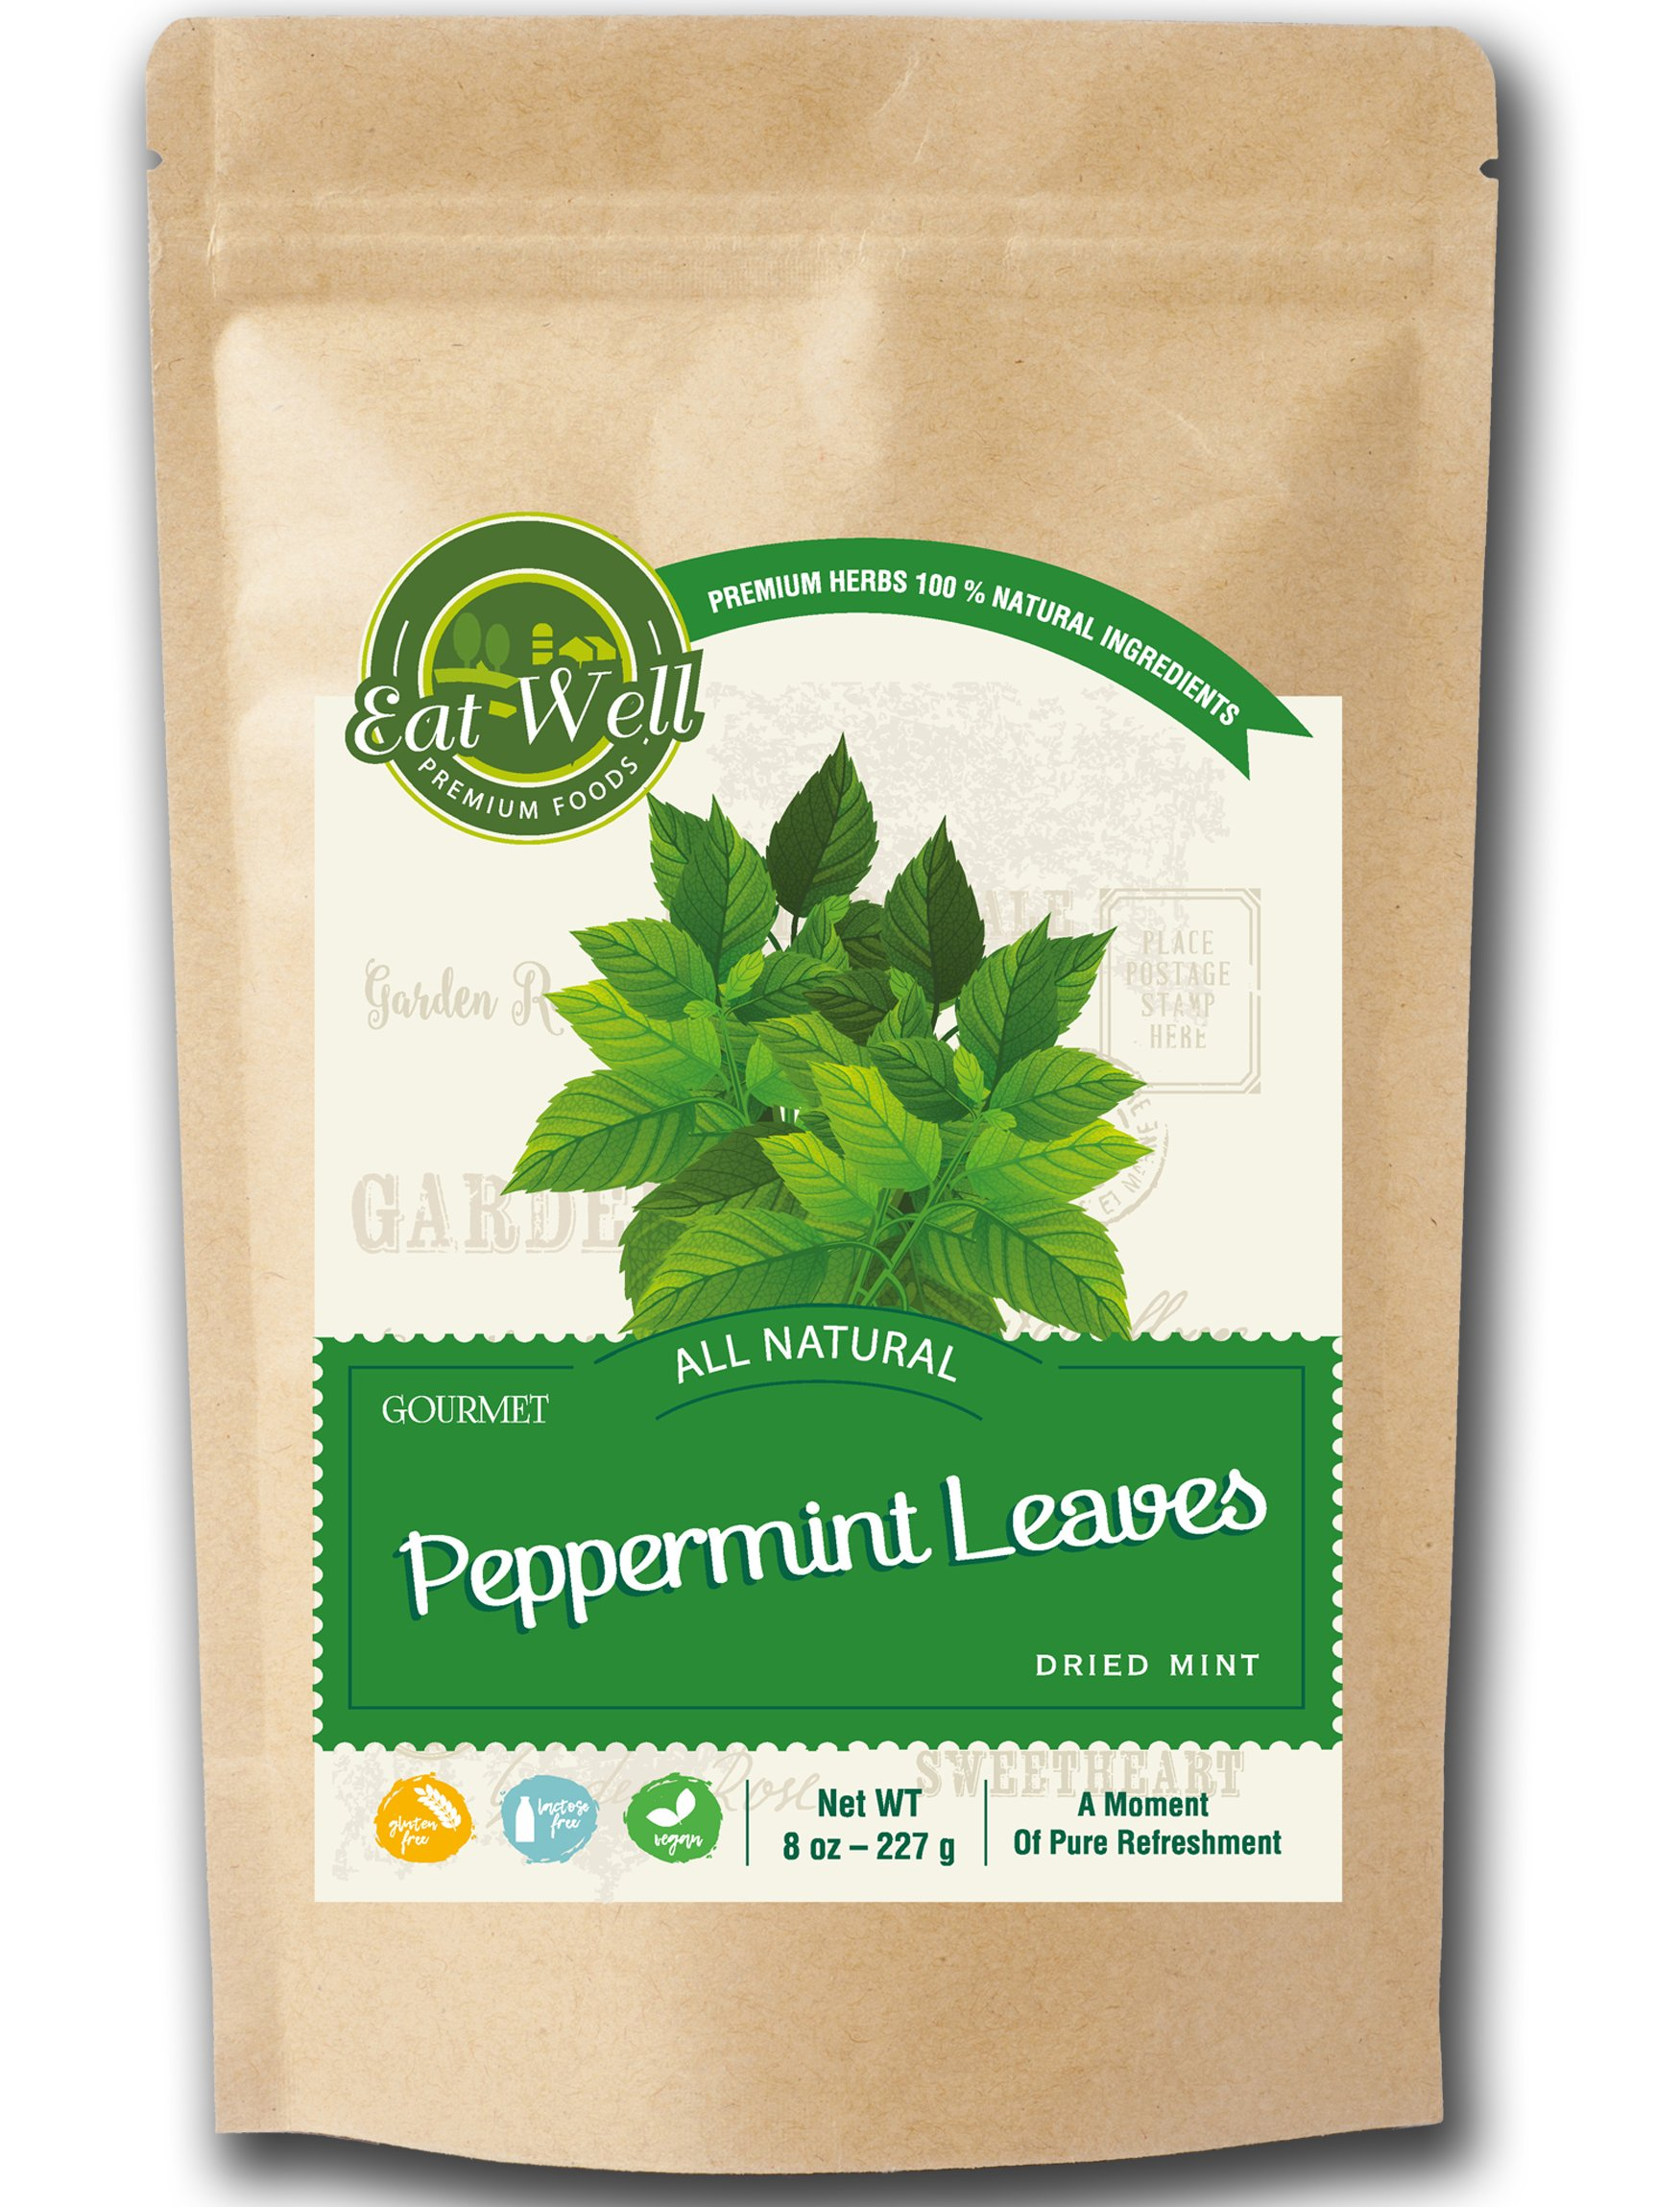 Crushed Mint Leaves | 8 oz Reseable Bag, Bulk | Cut & Sifted, Culinary Dried Mint Leaf | Crushed Peppermint Tea | Menta Piperita | by Eat Well Premium Foods